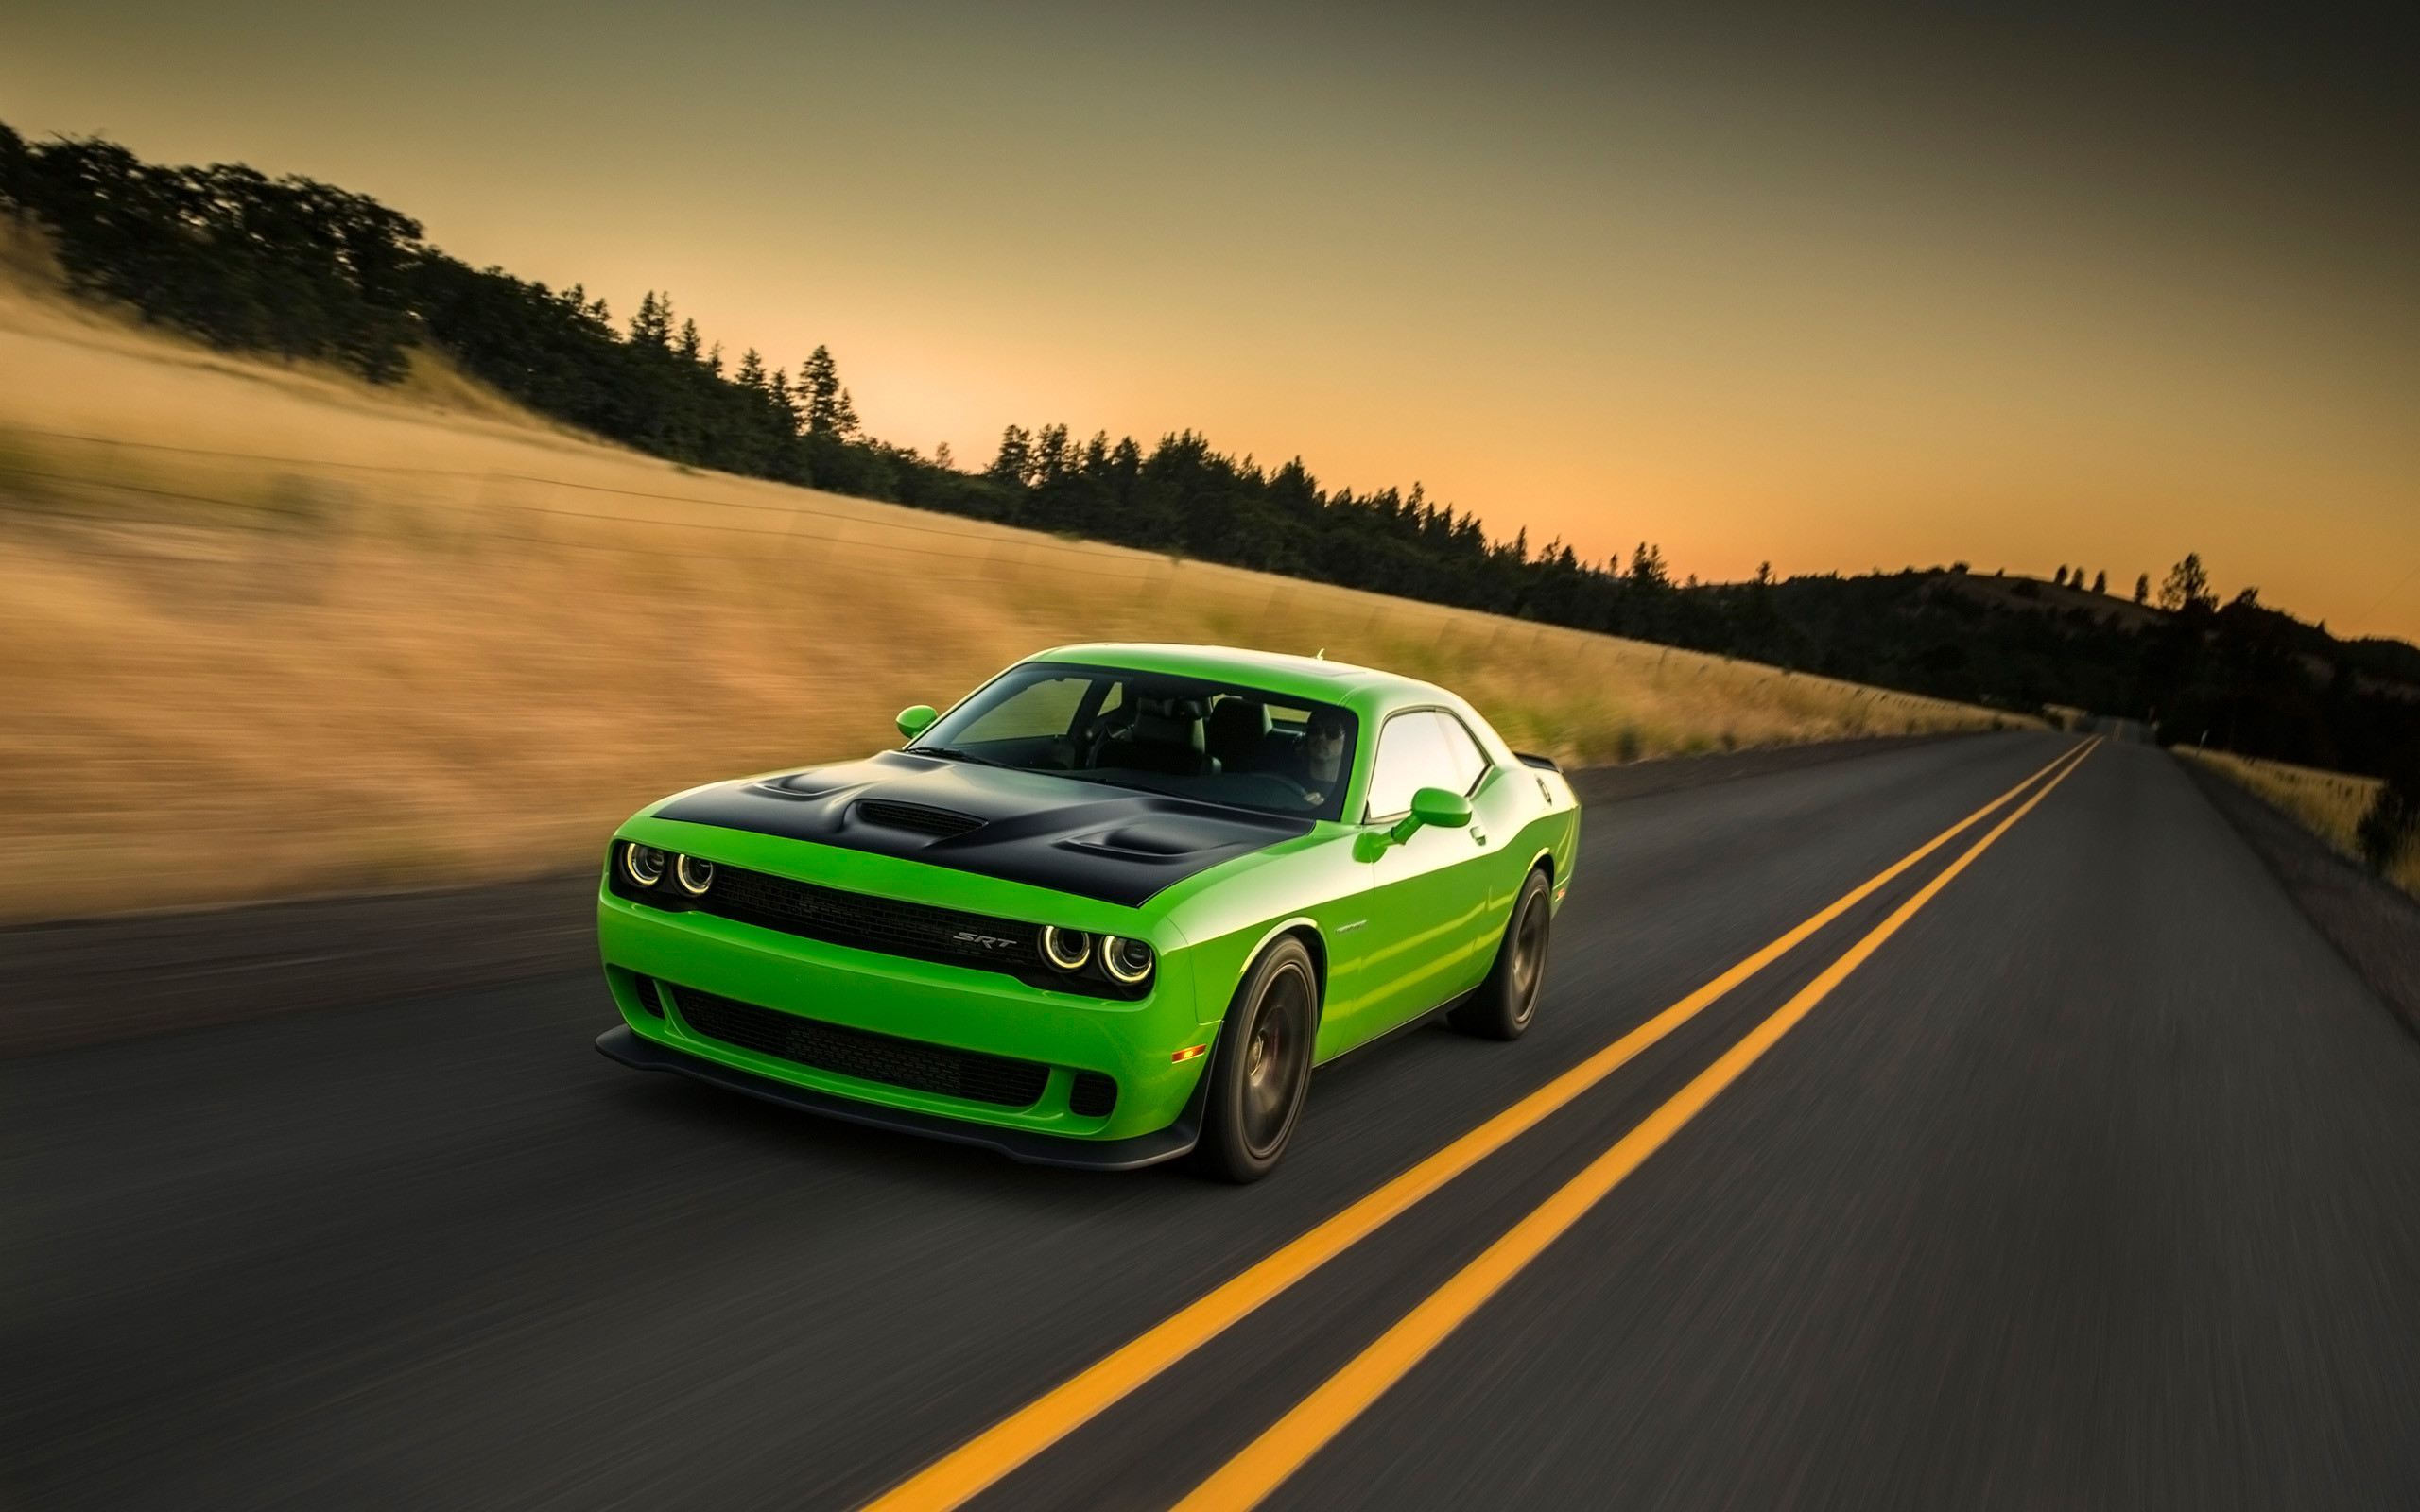 Res: 2560x1600, Dodge: Challenger News **2018 SRT Demon Version Details (page 21)** - Page  19 - AcuraZine - Acura Enthusiast Community